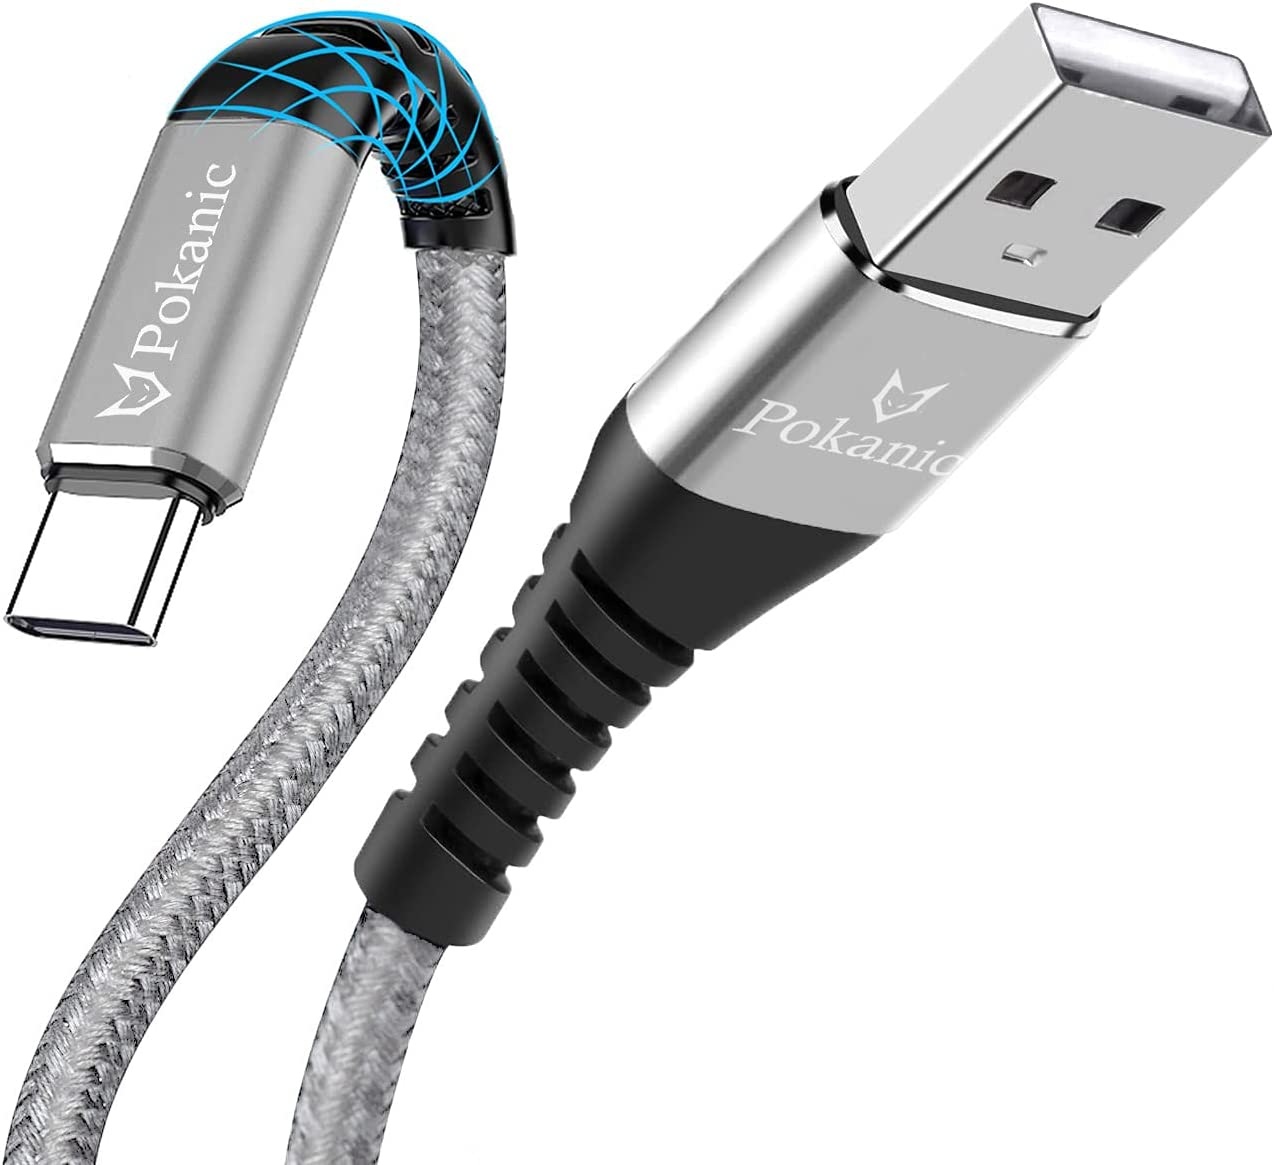 Pokanic USB C Type Cable Durable Nylon Braided Fast Quick Charging Connect Cord USB-C to USB-A Compatible with Apple iPad Pro Samsung Galaxy LG Google Pixel Nintendo Switch (1 ft, Silver - 1 Pack)